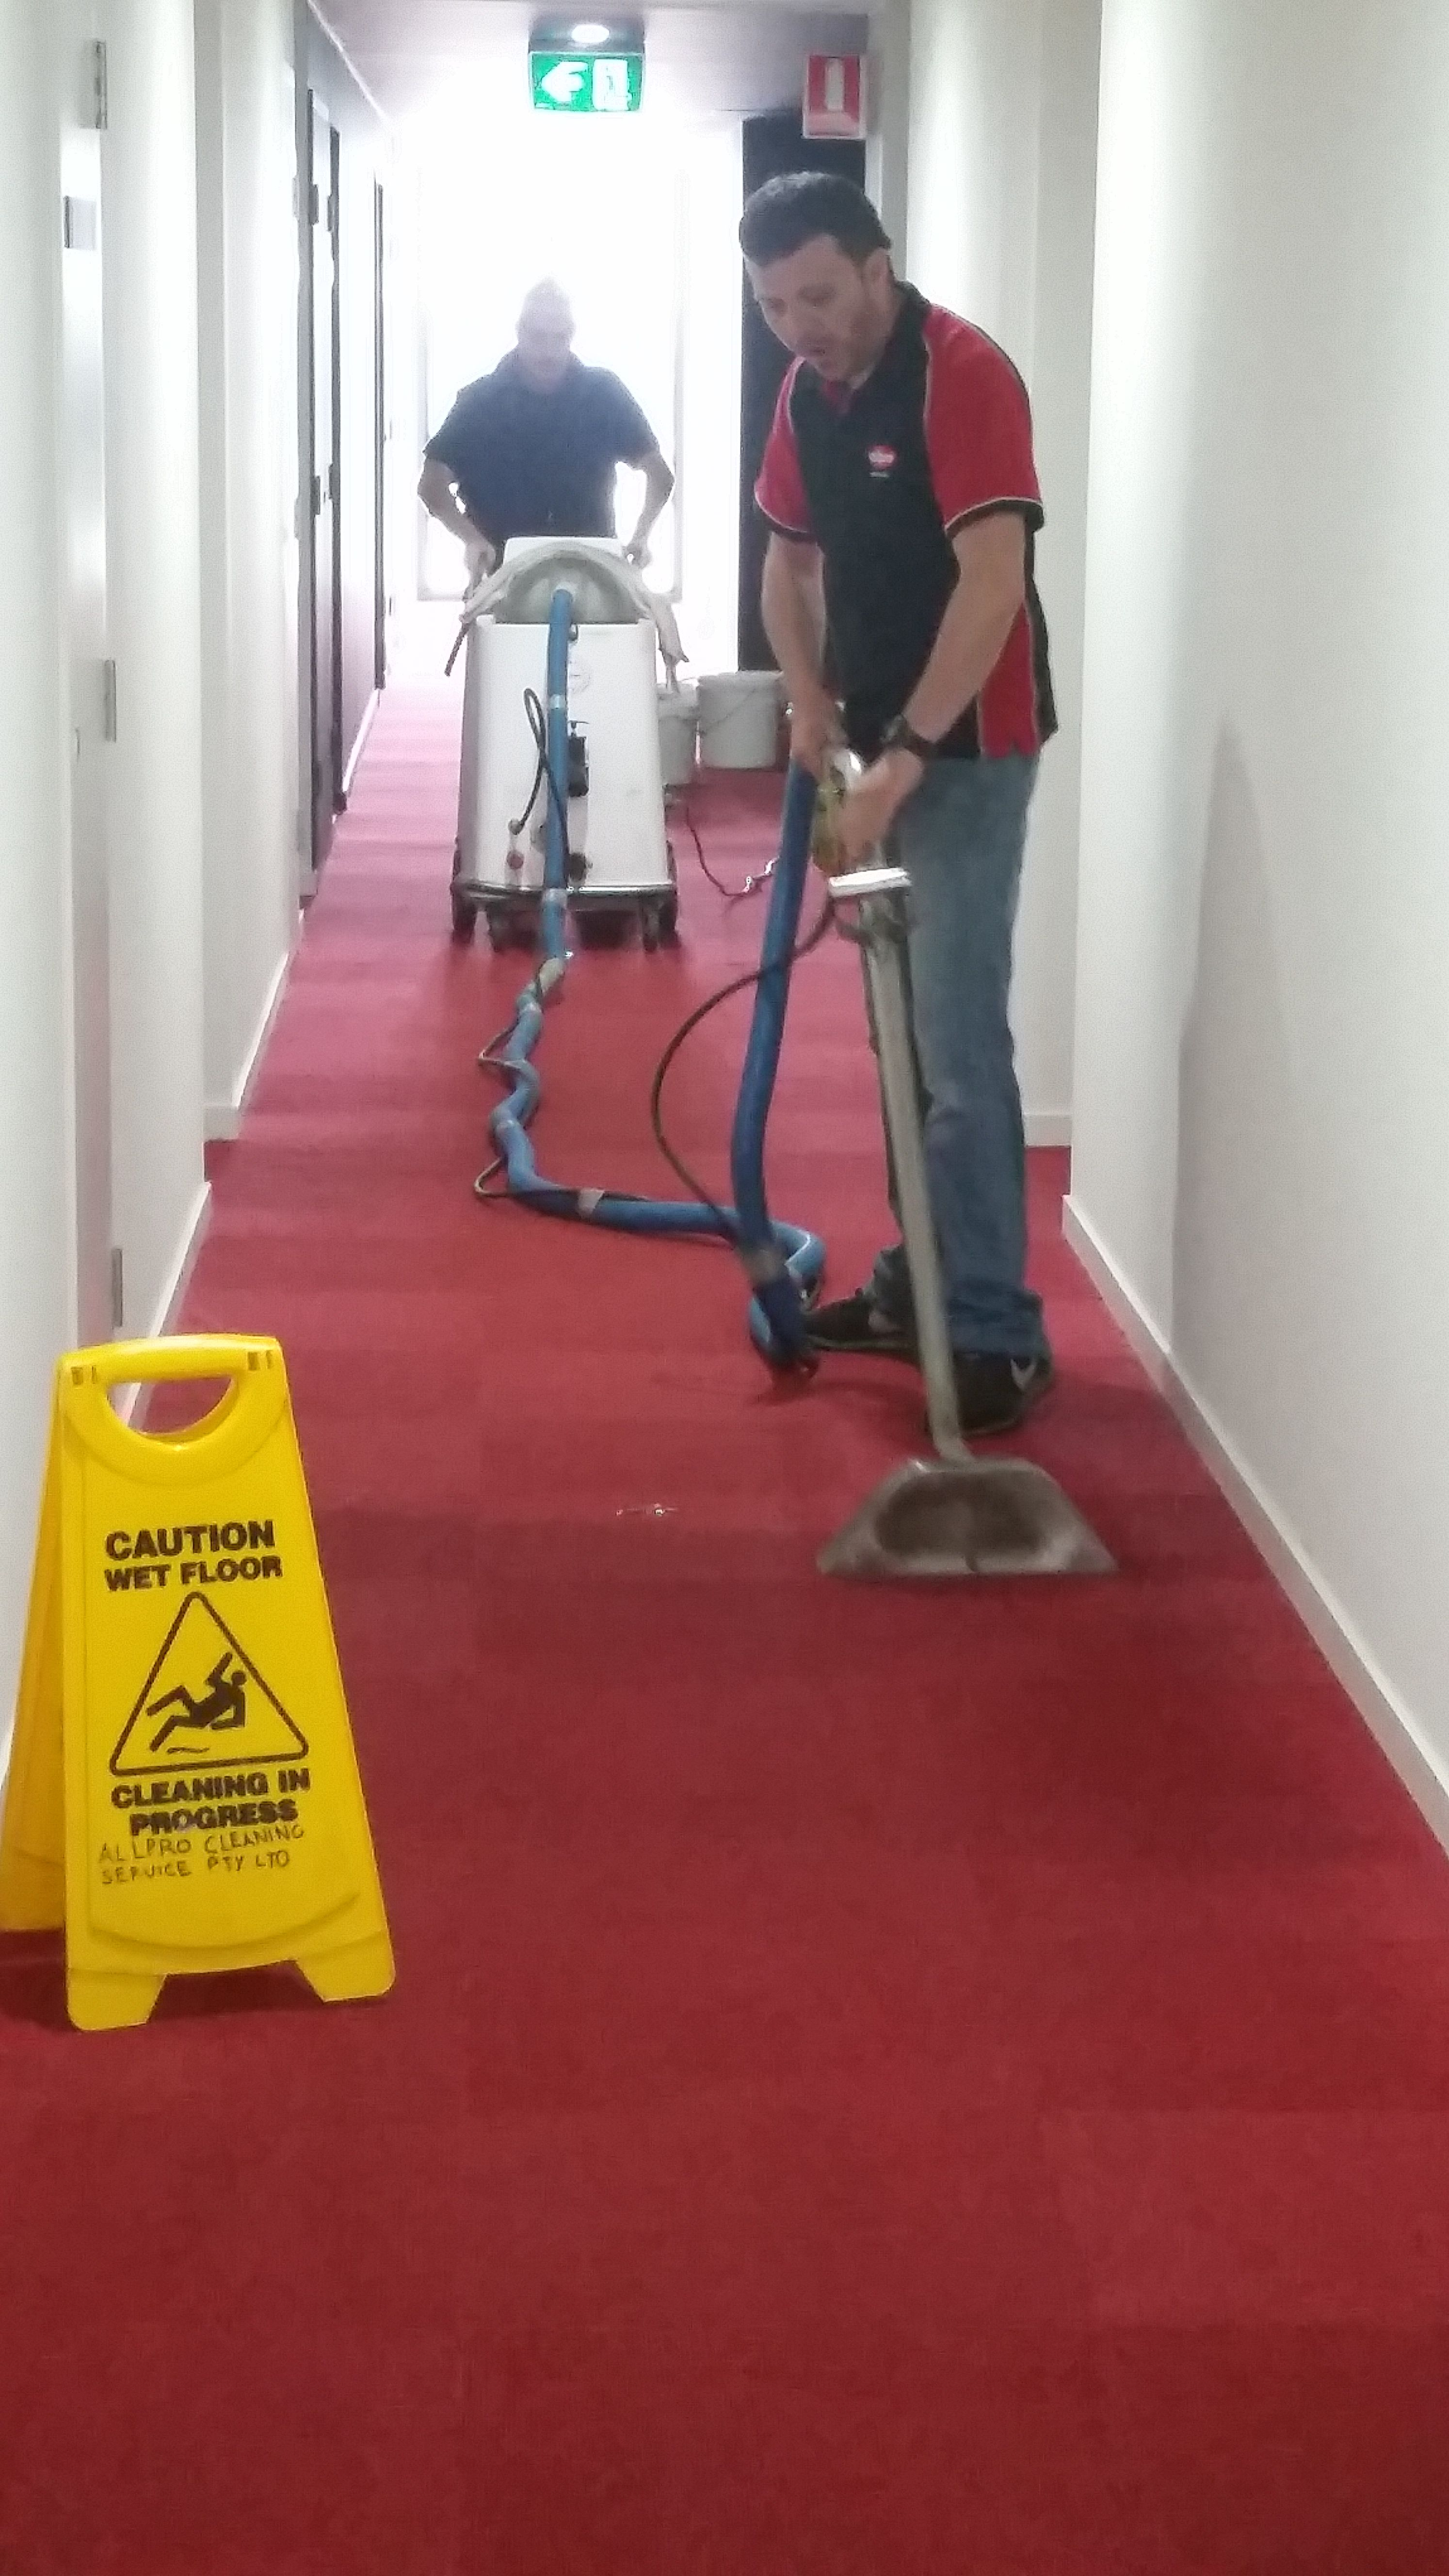 Allpro Cleaning Service How To Clean Carpet Carpet Cleaning Service Window Cleaning Services